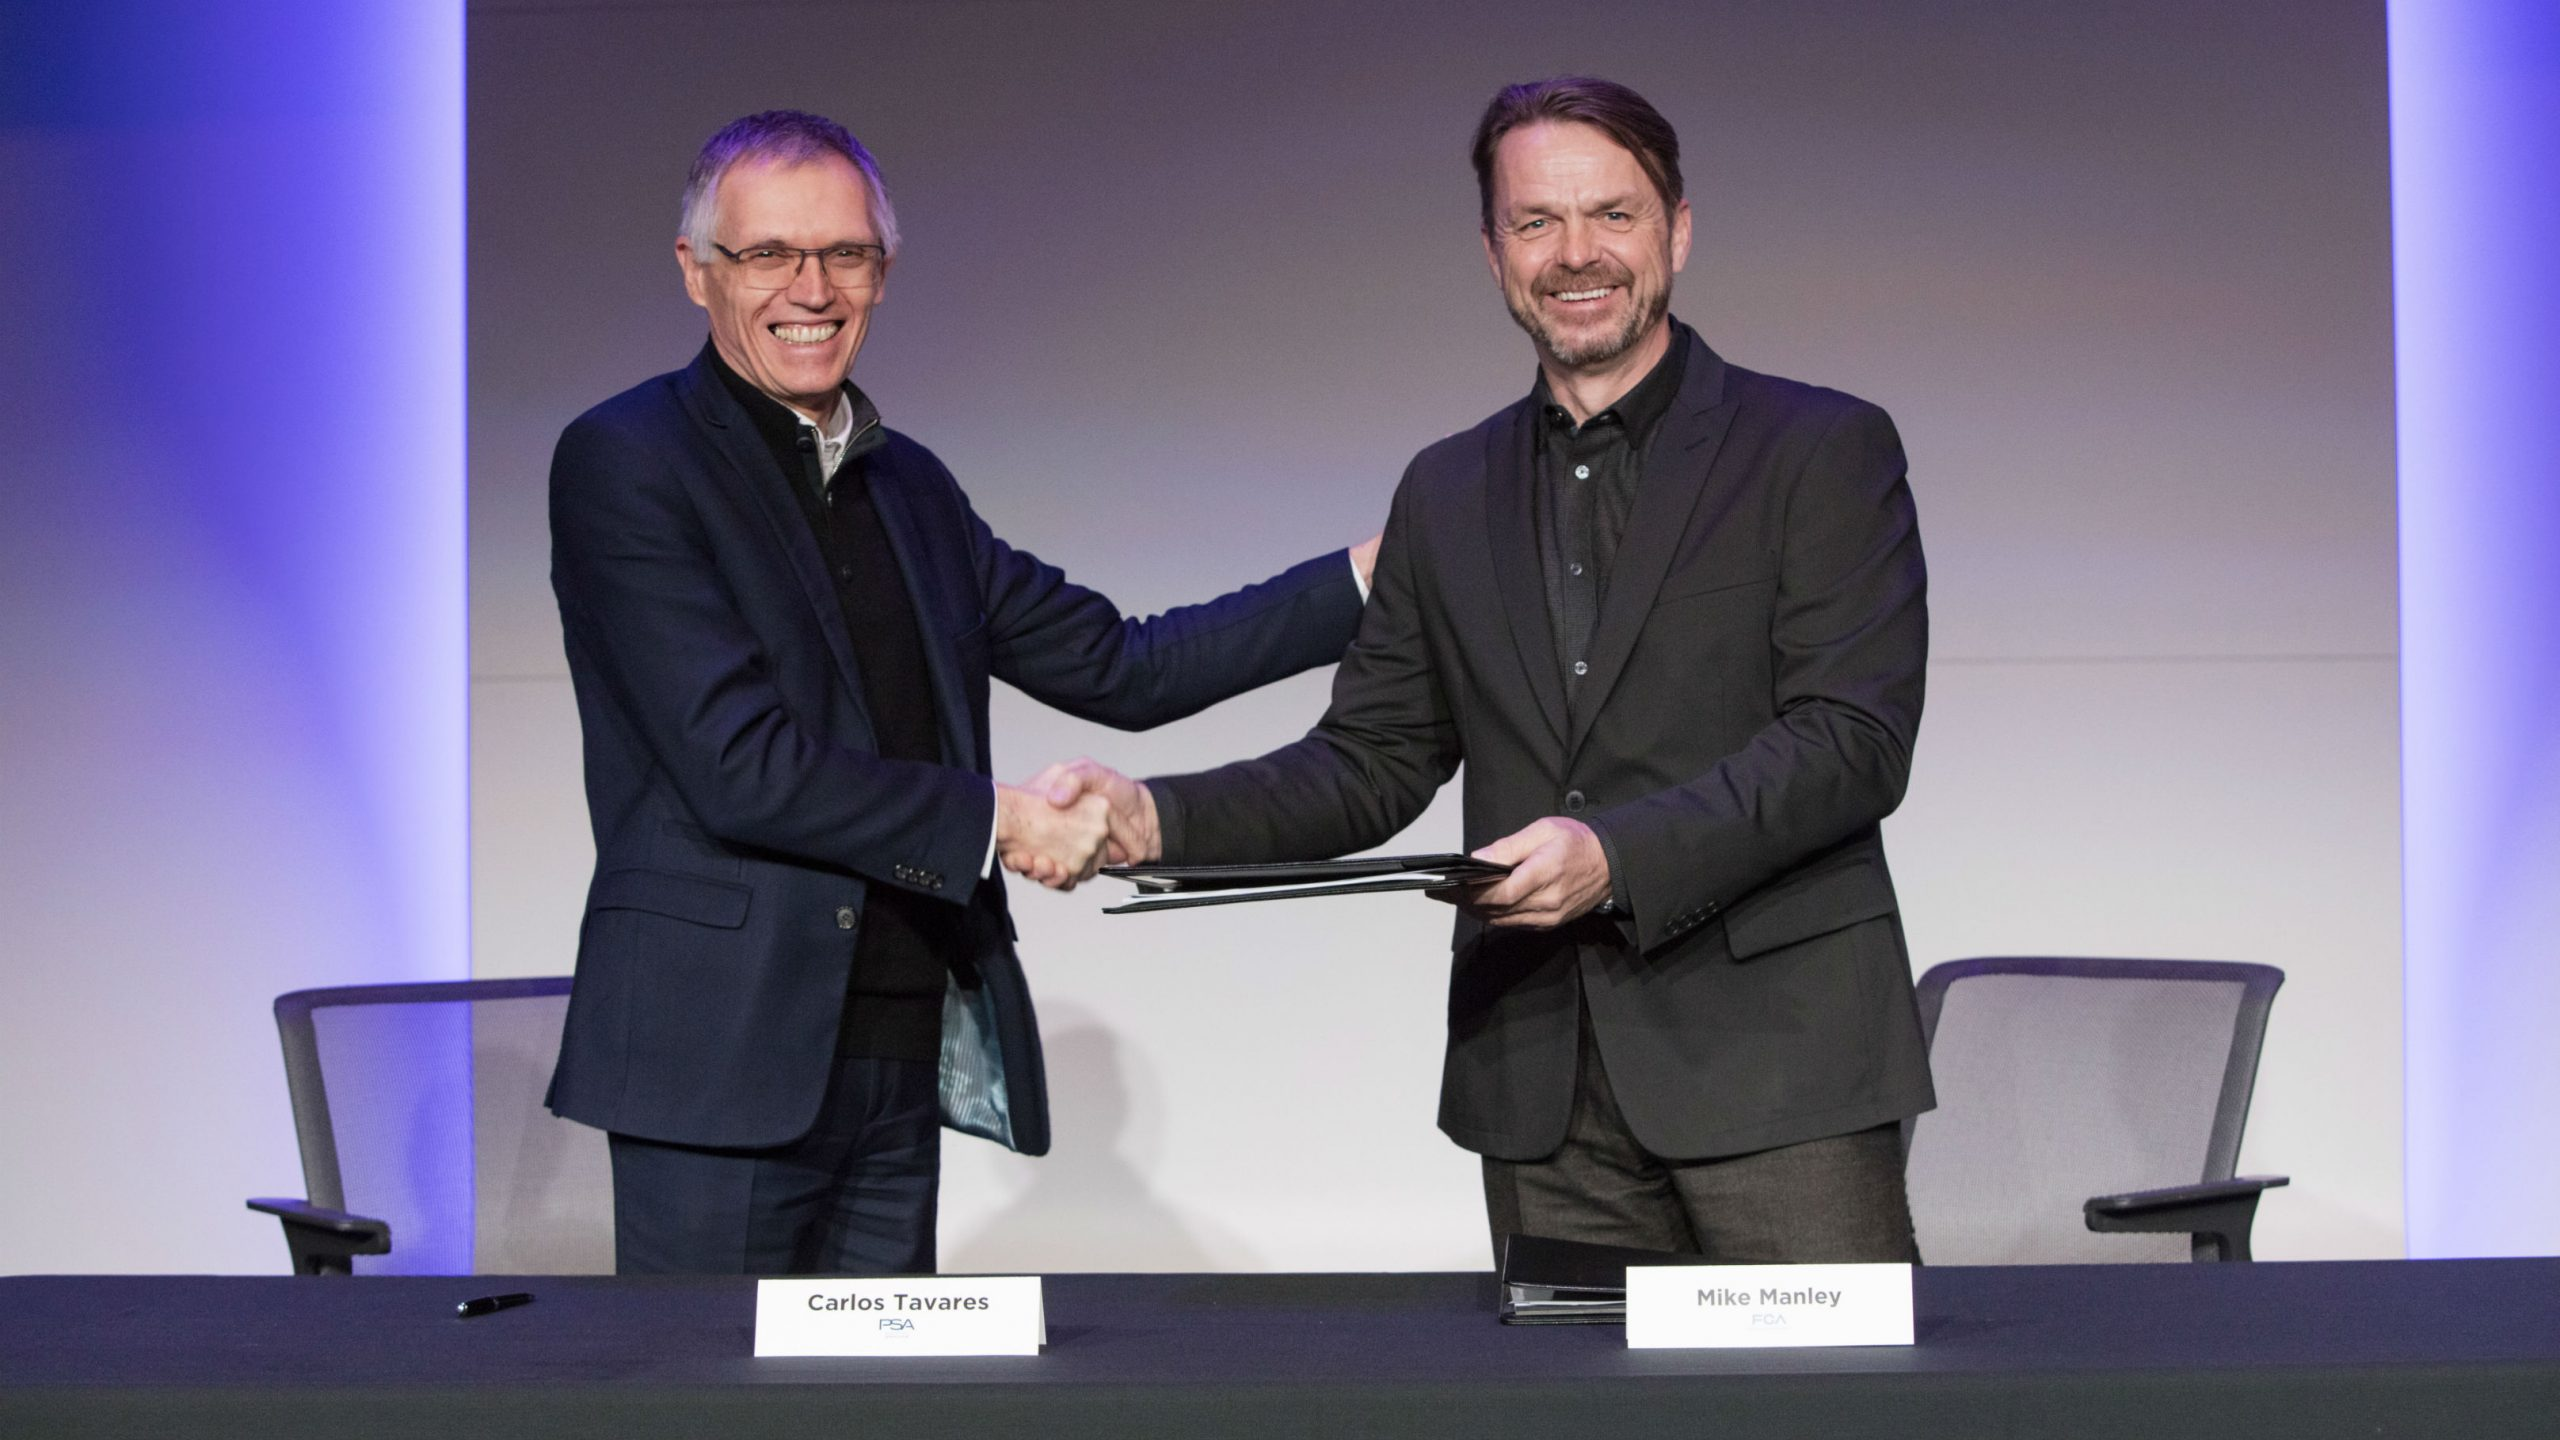 FCA and Groupe PSA Announce Merger Deal